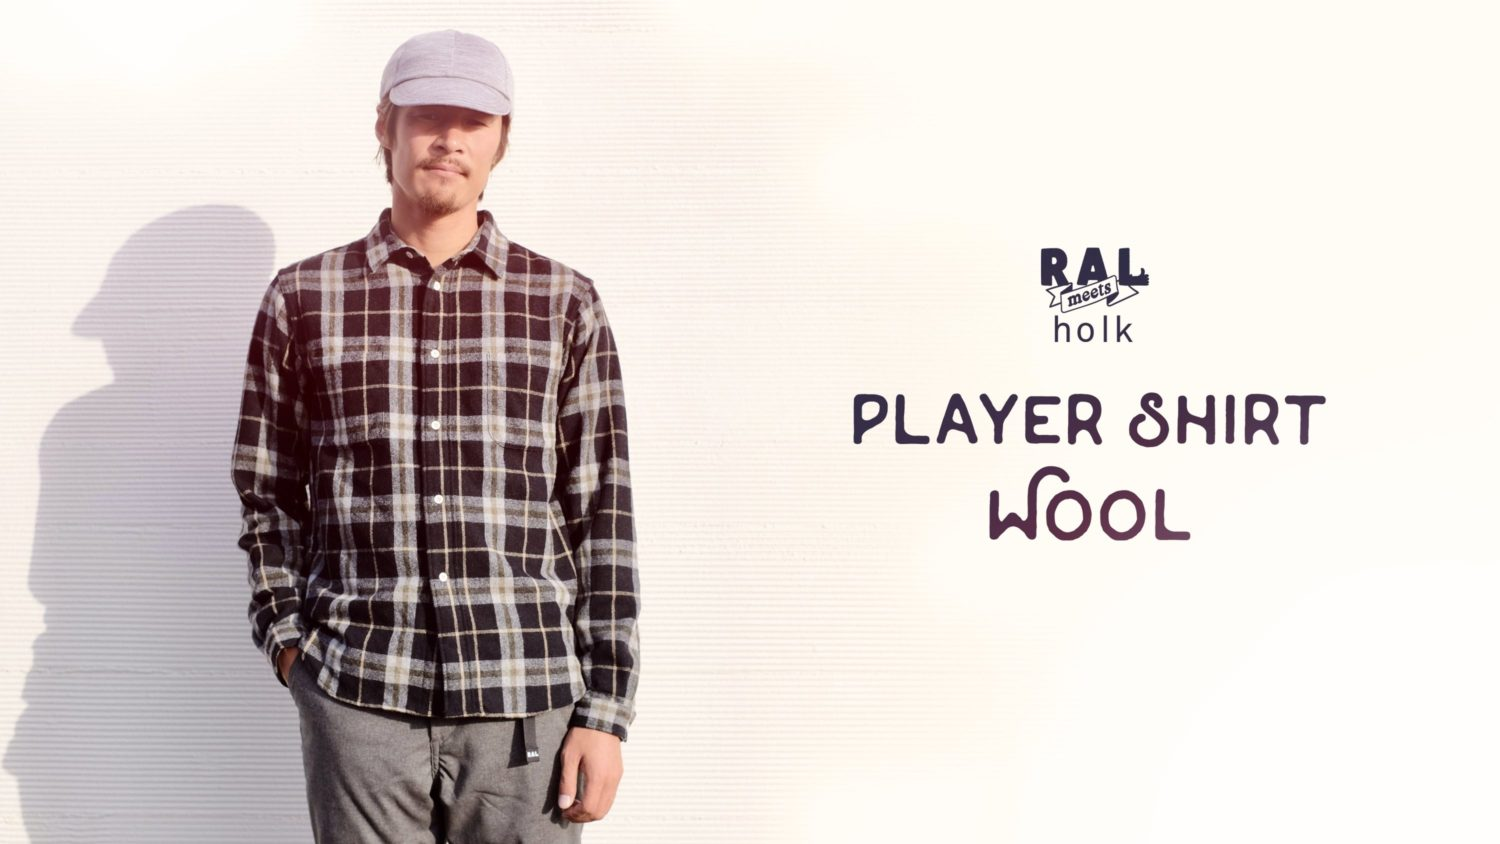 RAL meets holk / Player Shirt Wool